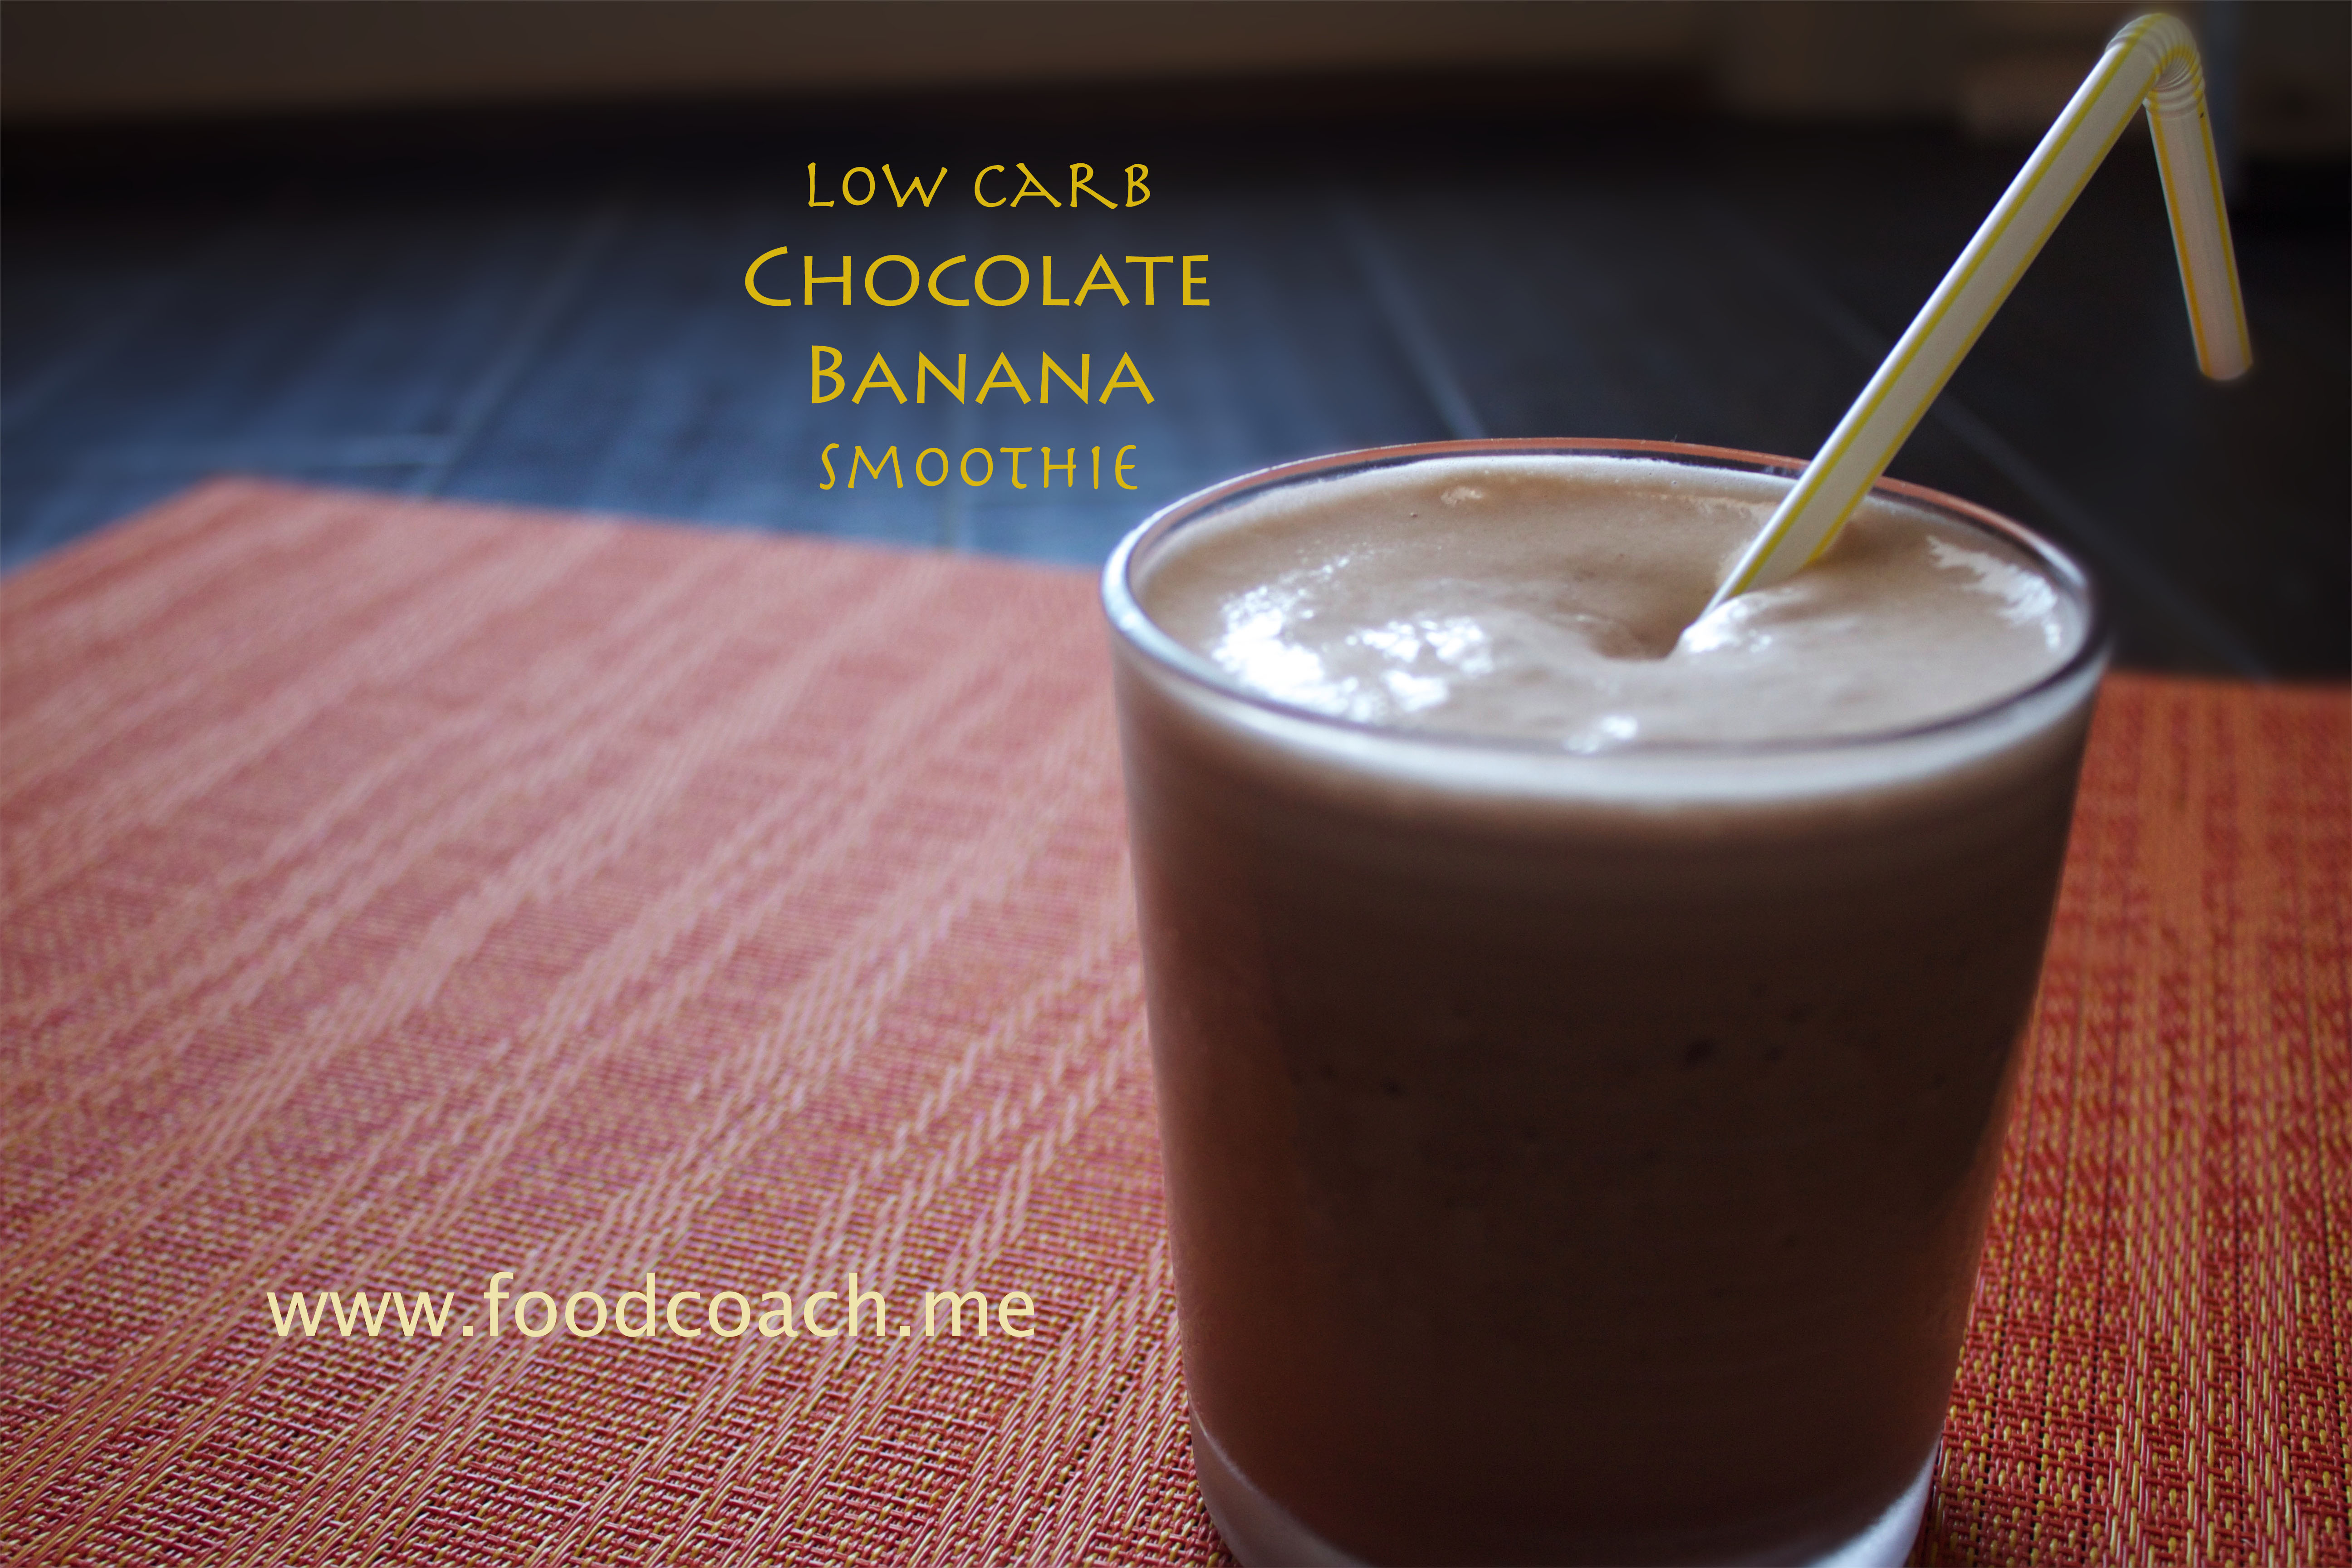 Low Carb Chocolate Banana Smoothie -